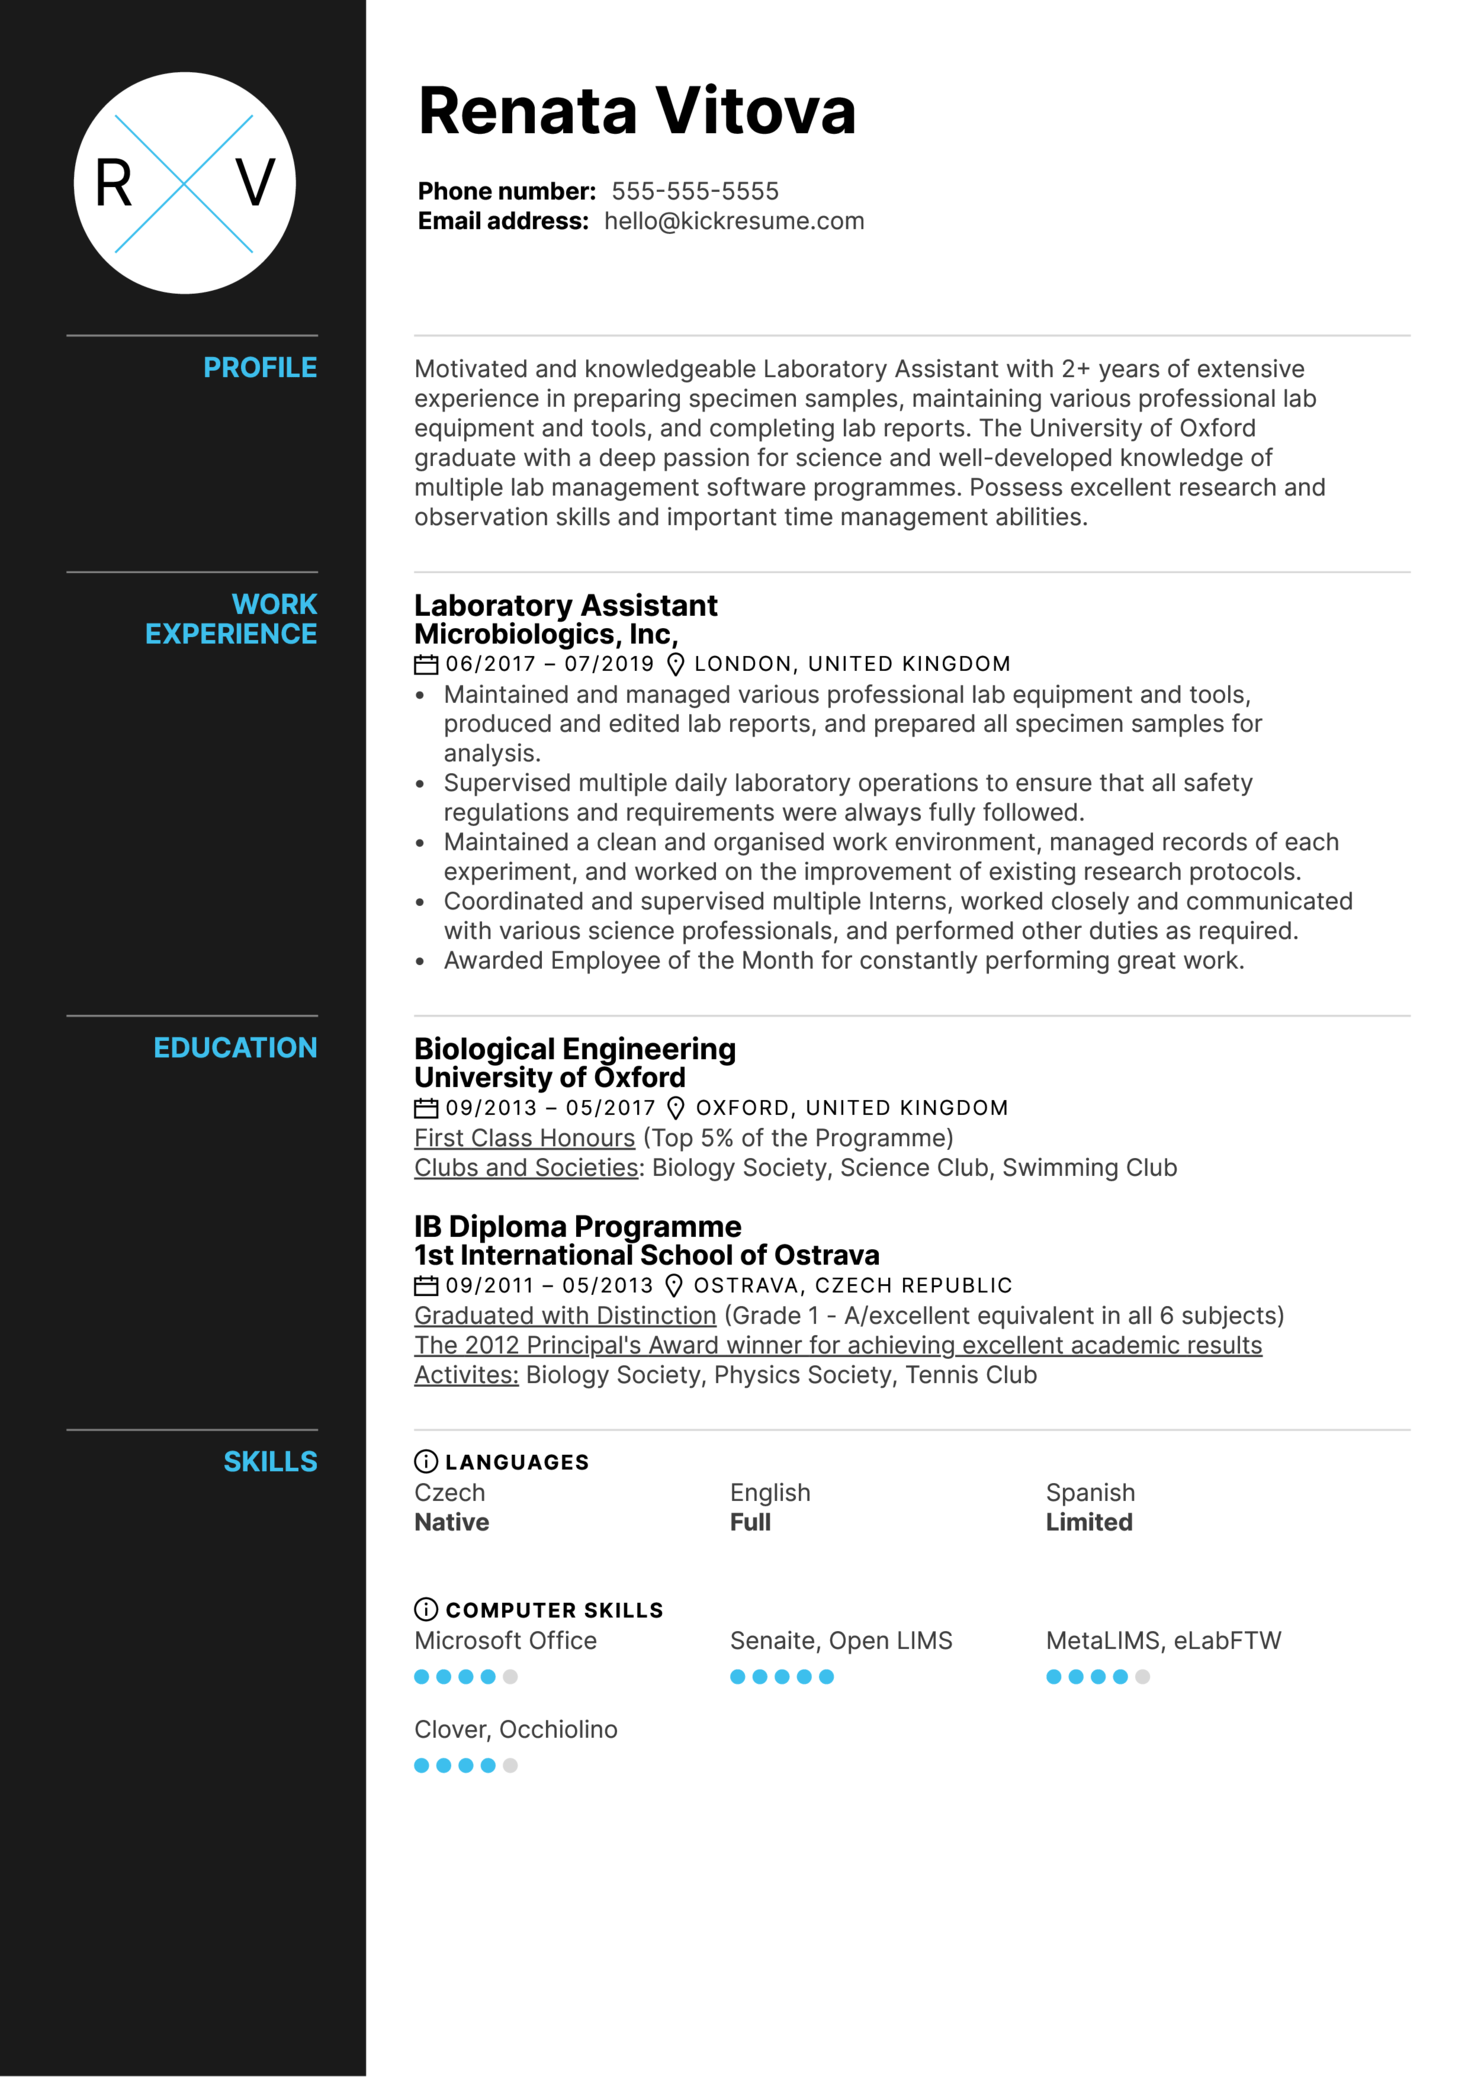 Laboratory Assistant Resume Sample Kickresume